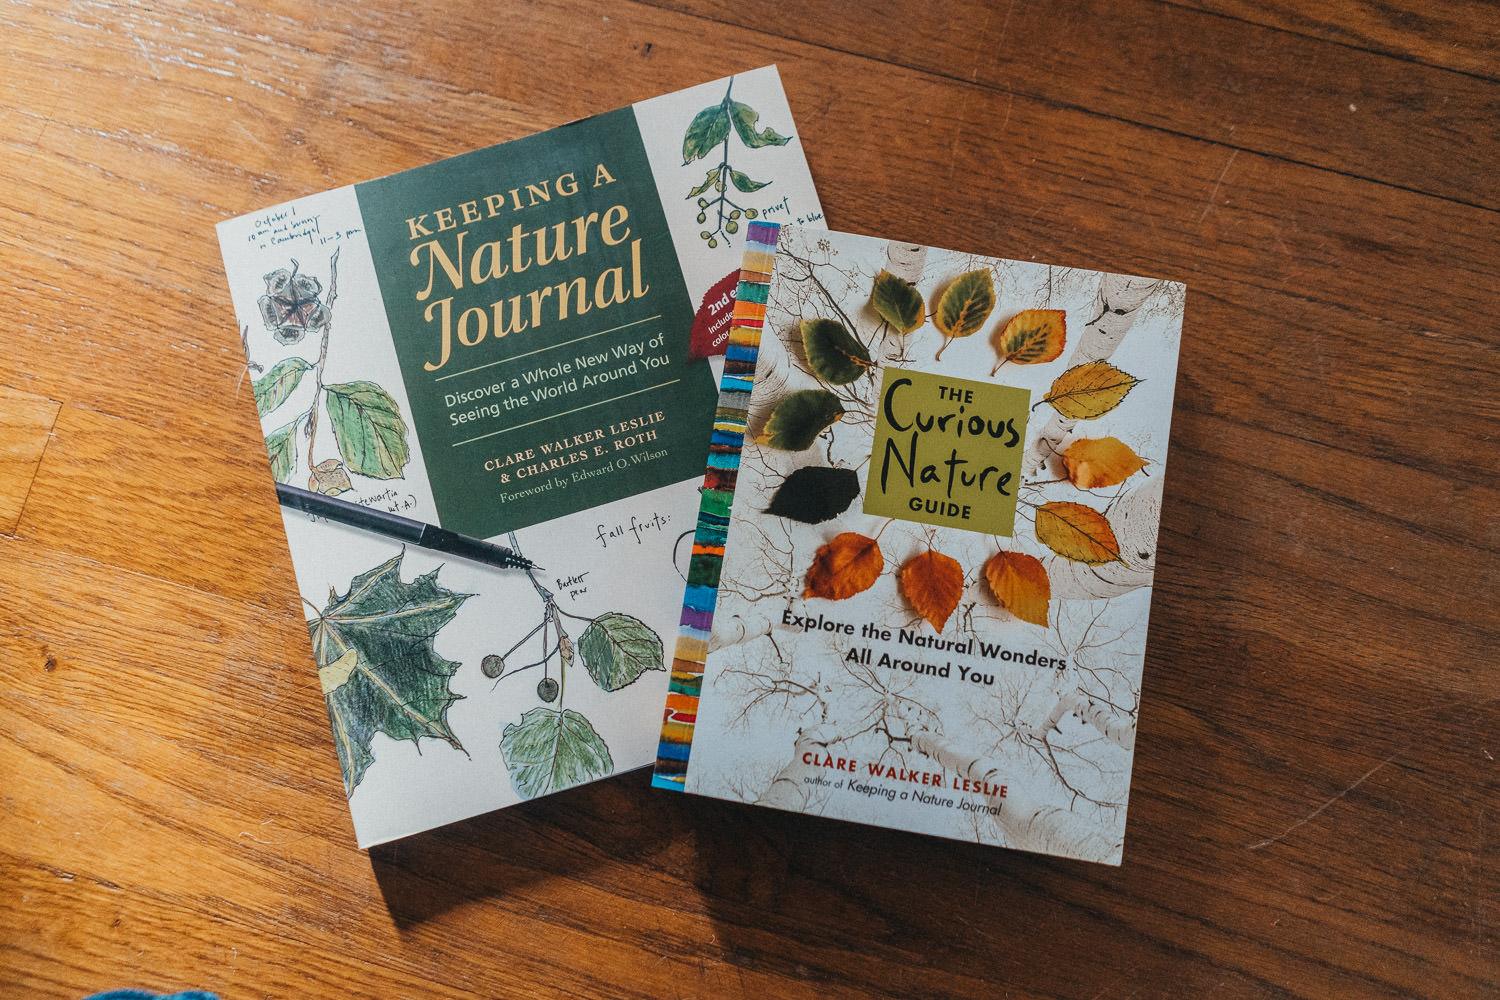 Books about nature journaling.